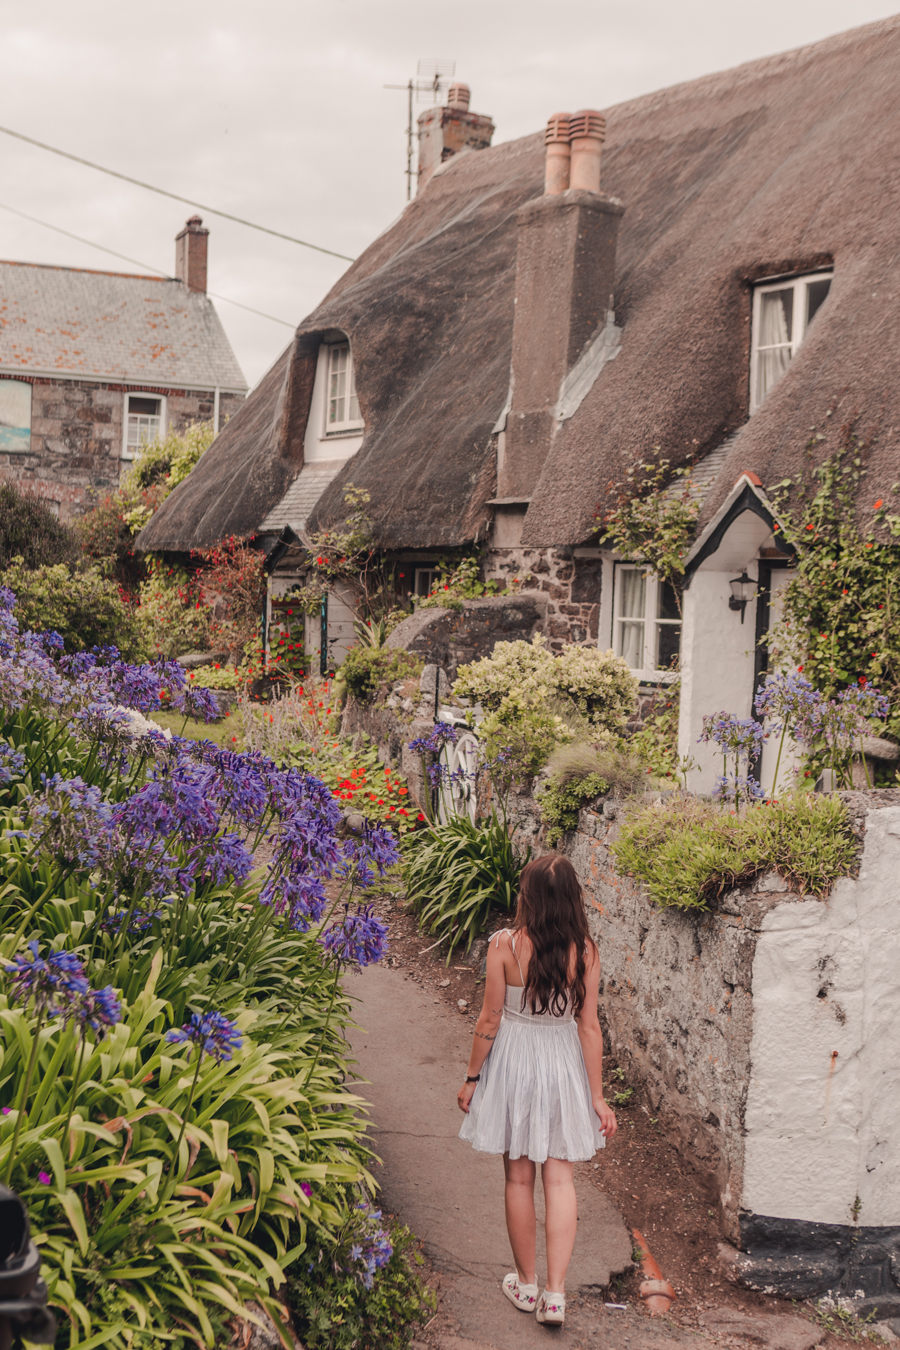 Thatched Cottages in Cadgwith Cove, Cornwall